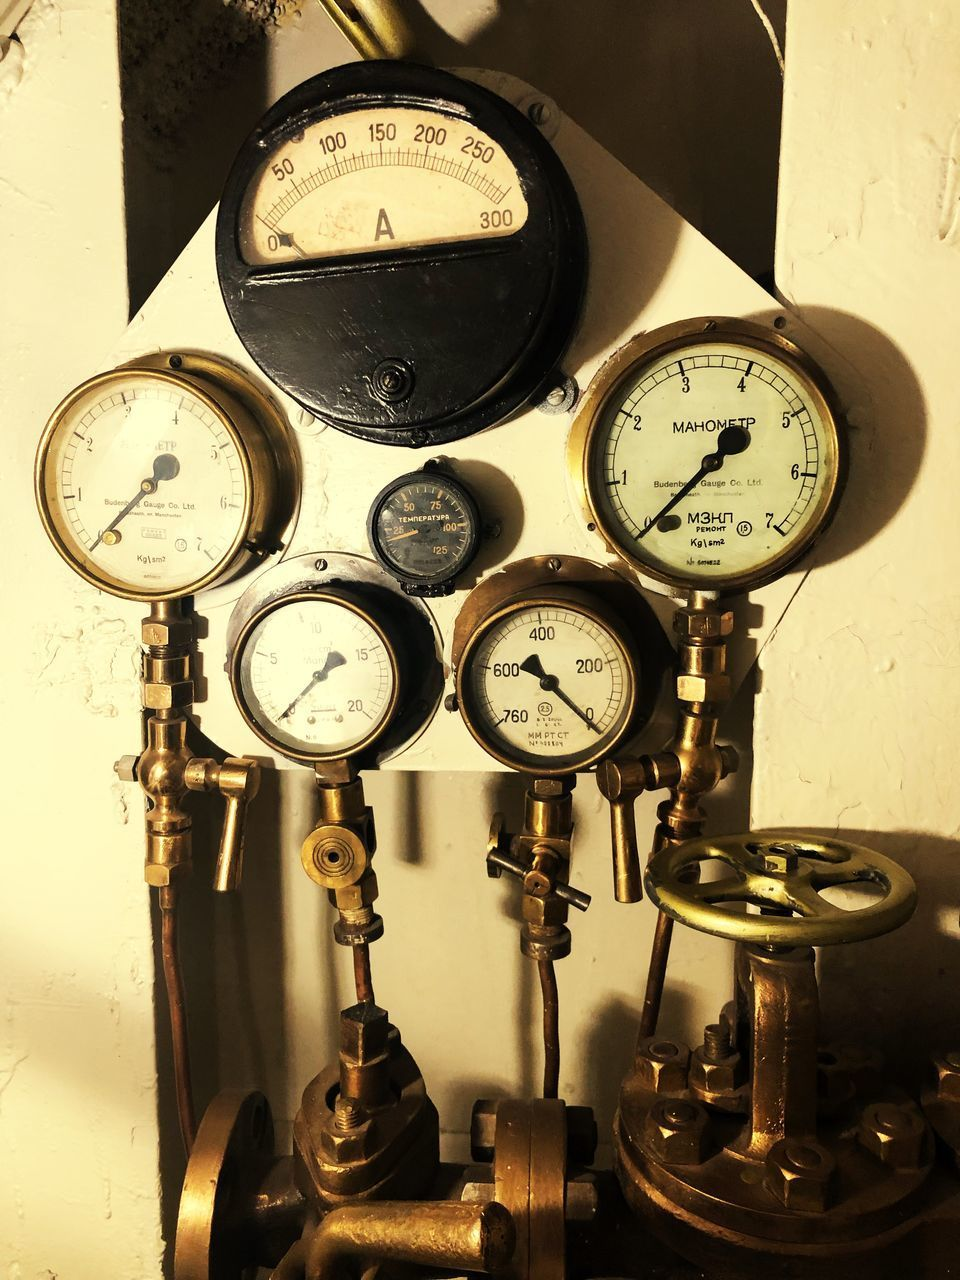 machinery, gauge, instrument of measurement, equipment, indoors, number, machine part, pressure gauge, accuracy, no people, technology, physical pressure, industry, measuring, manufacturing equipment, meter - instrument of measurement, wall - building feature, close-up, factory, dial, clock, industrial equipment